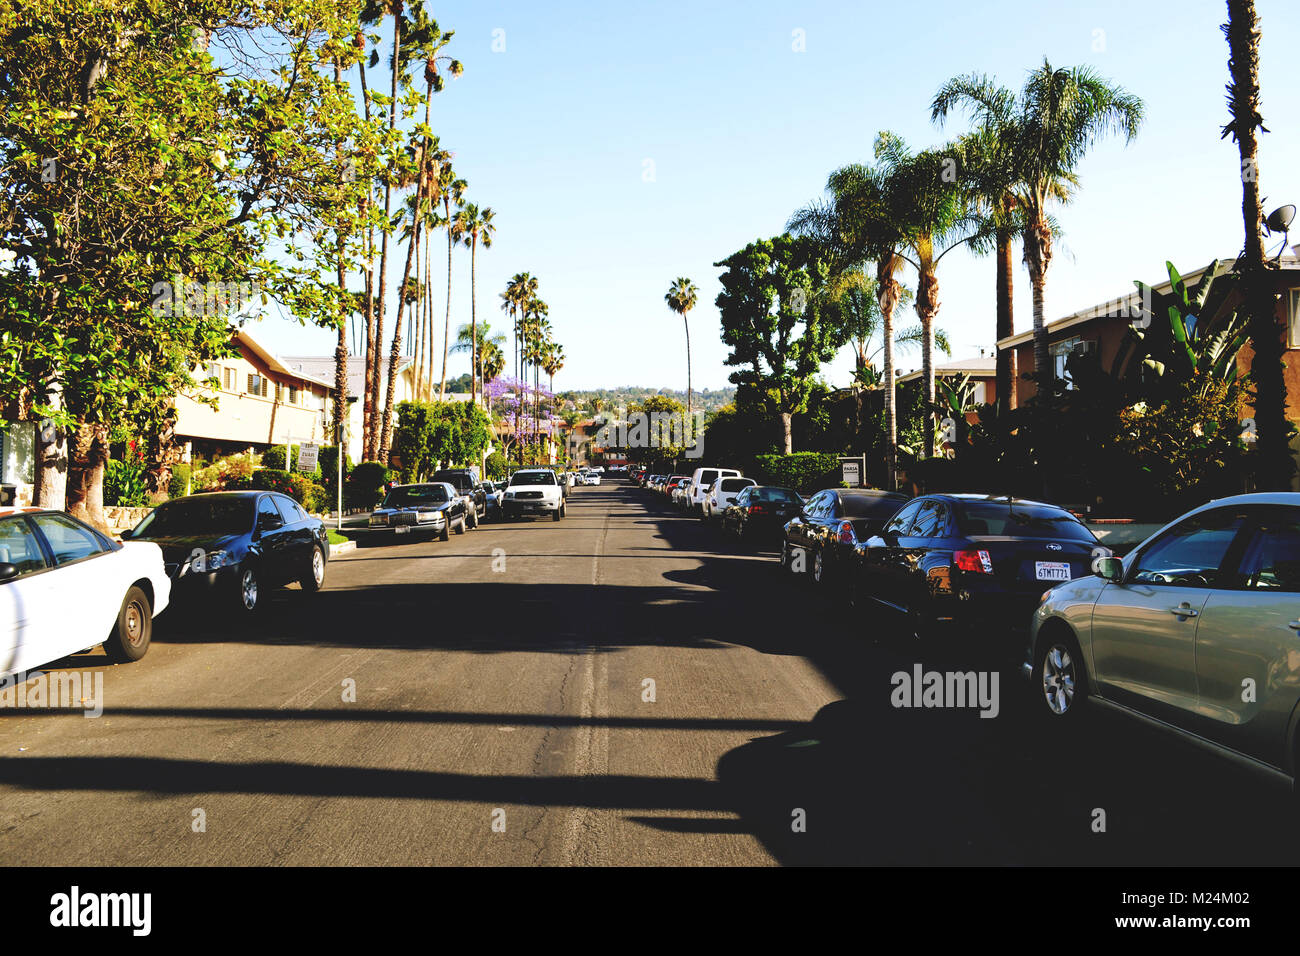 Calm, old school street with cars and palm trees Stock Photo ...